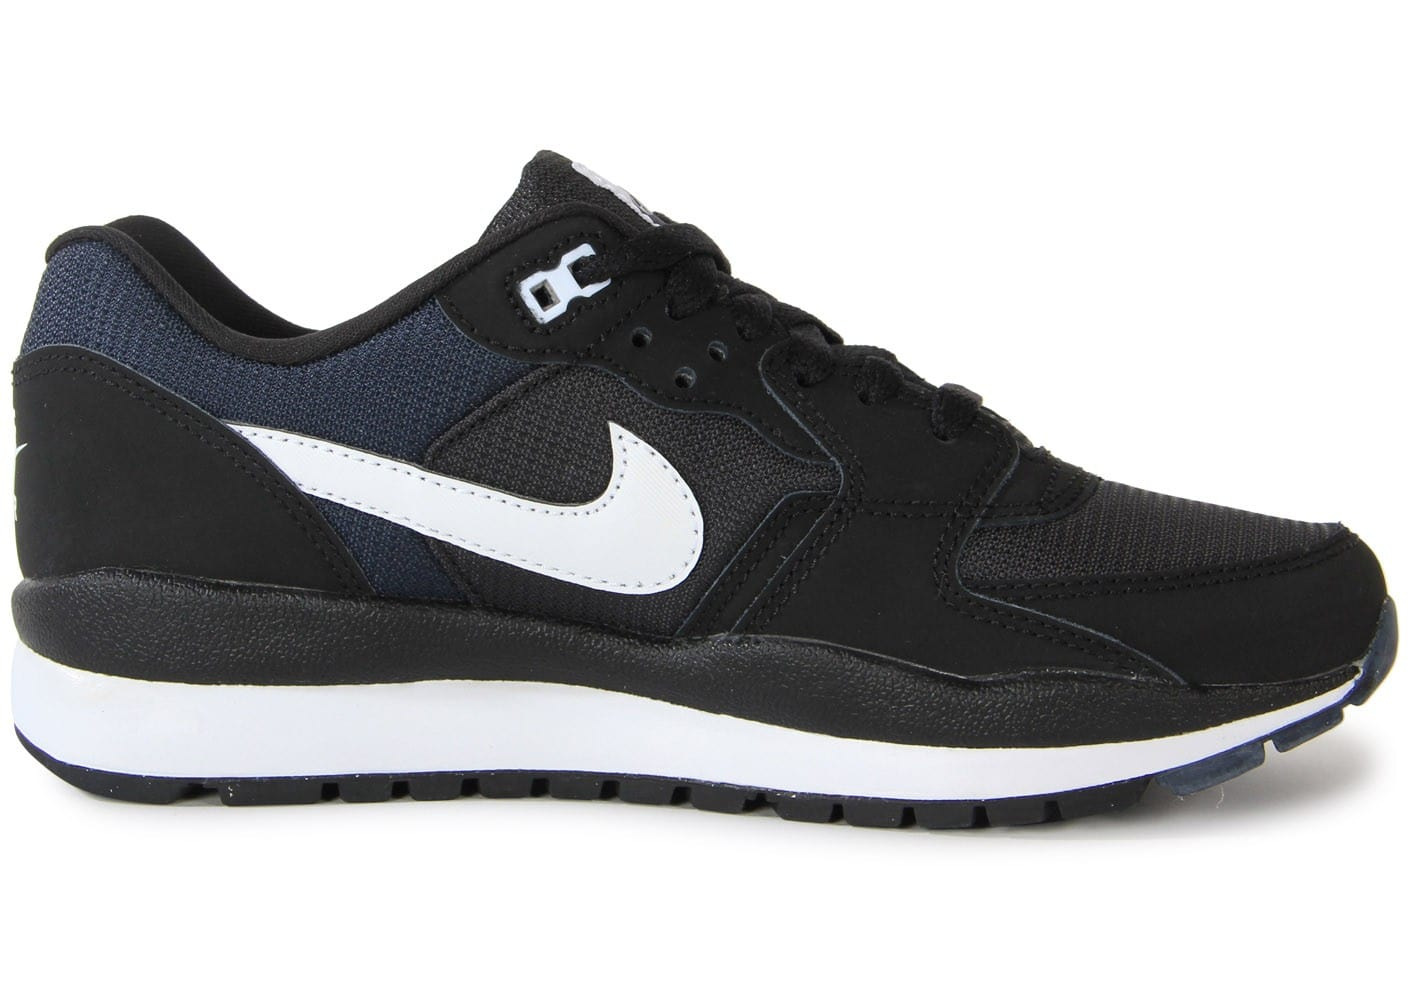 check out 47c57 d34ff ... Chaussures Nike Windrunner Noire vue dessous ...